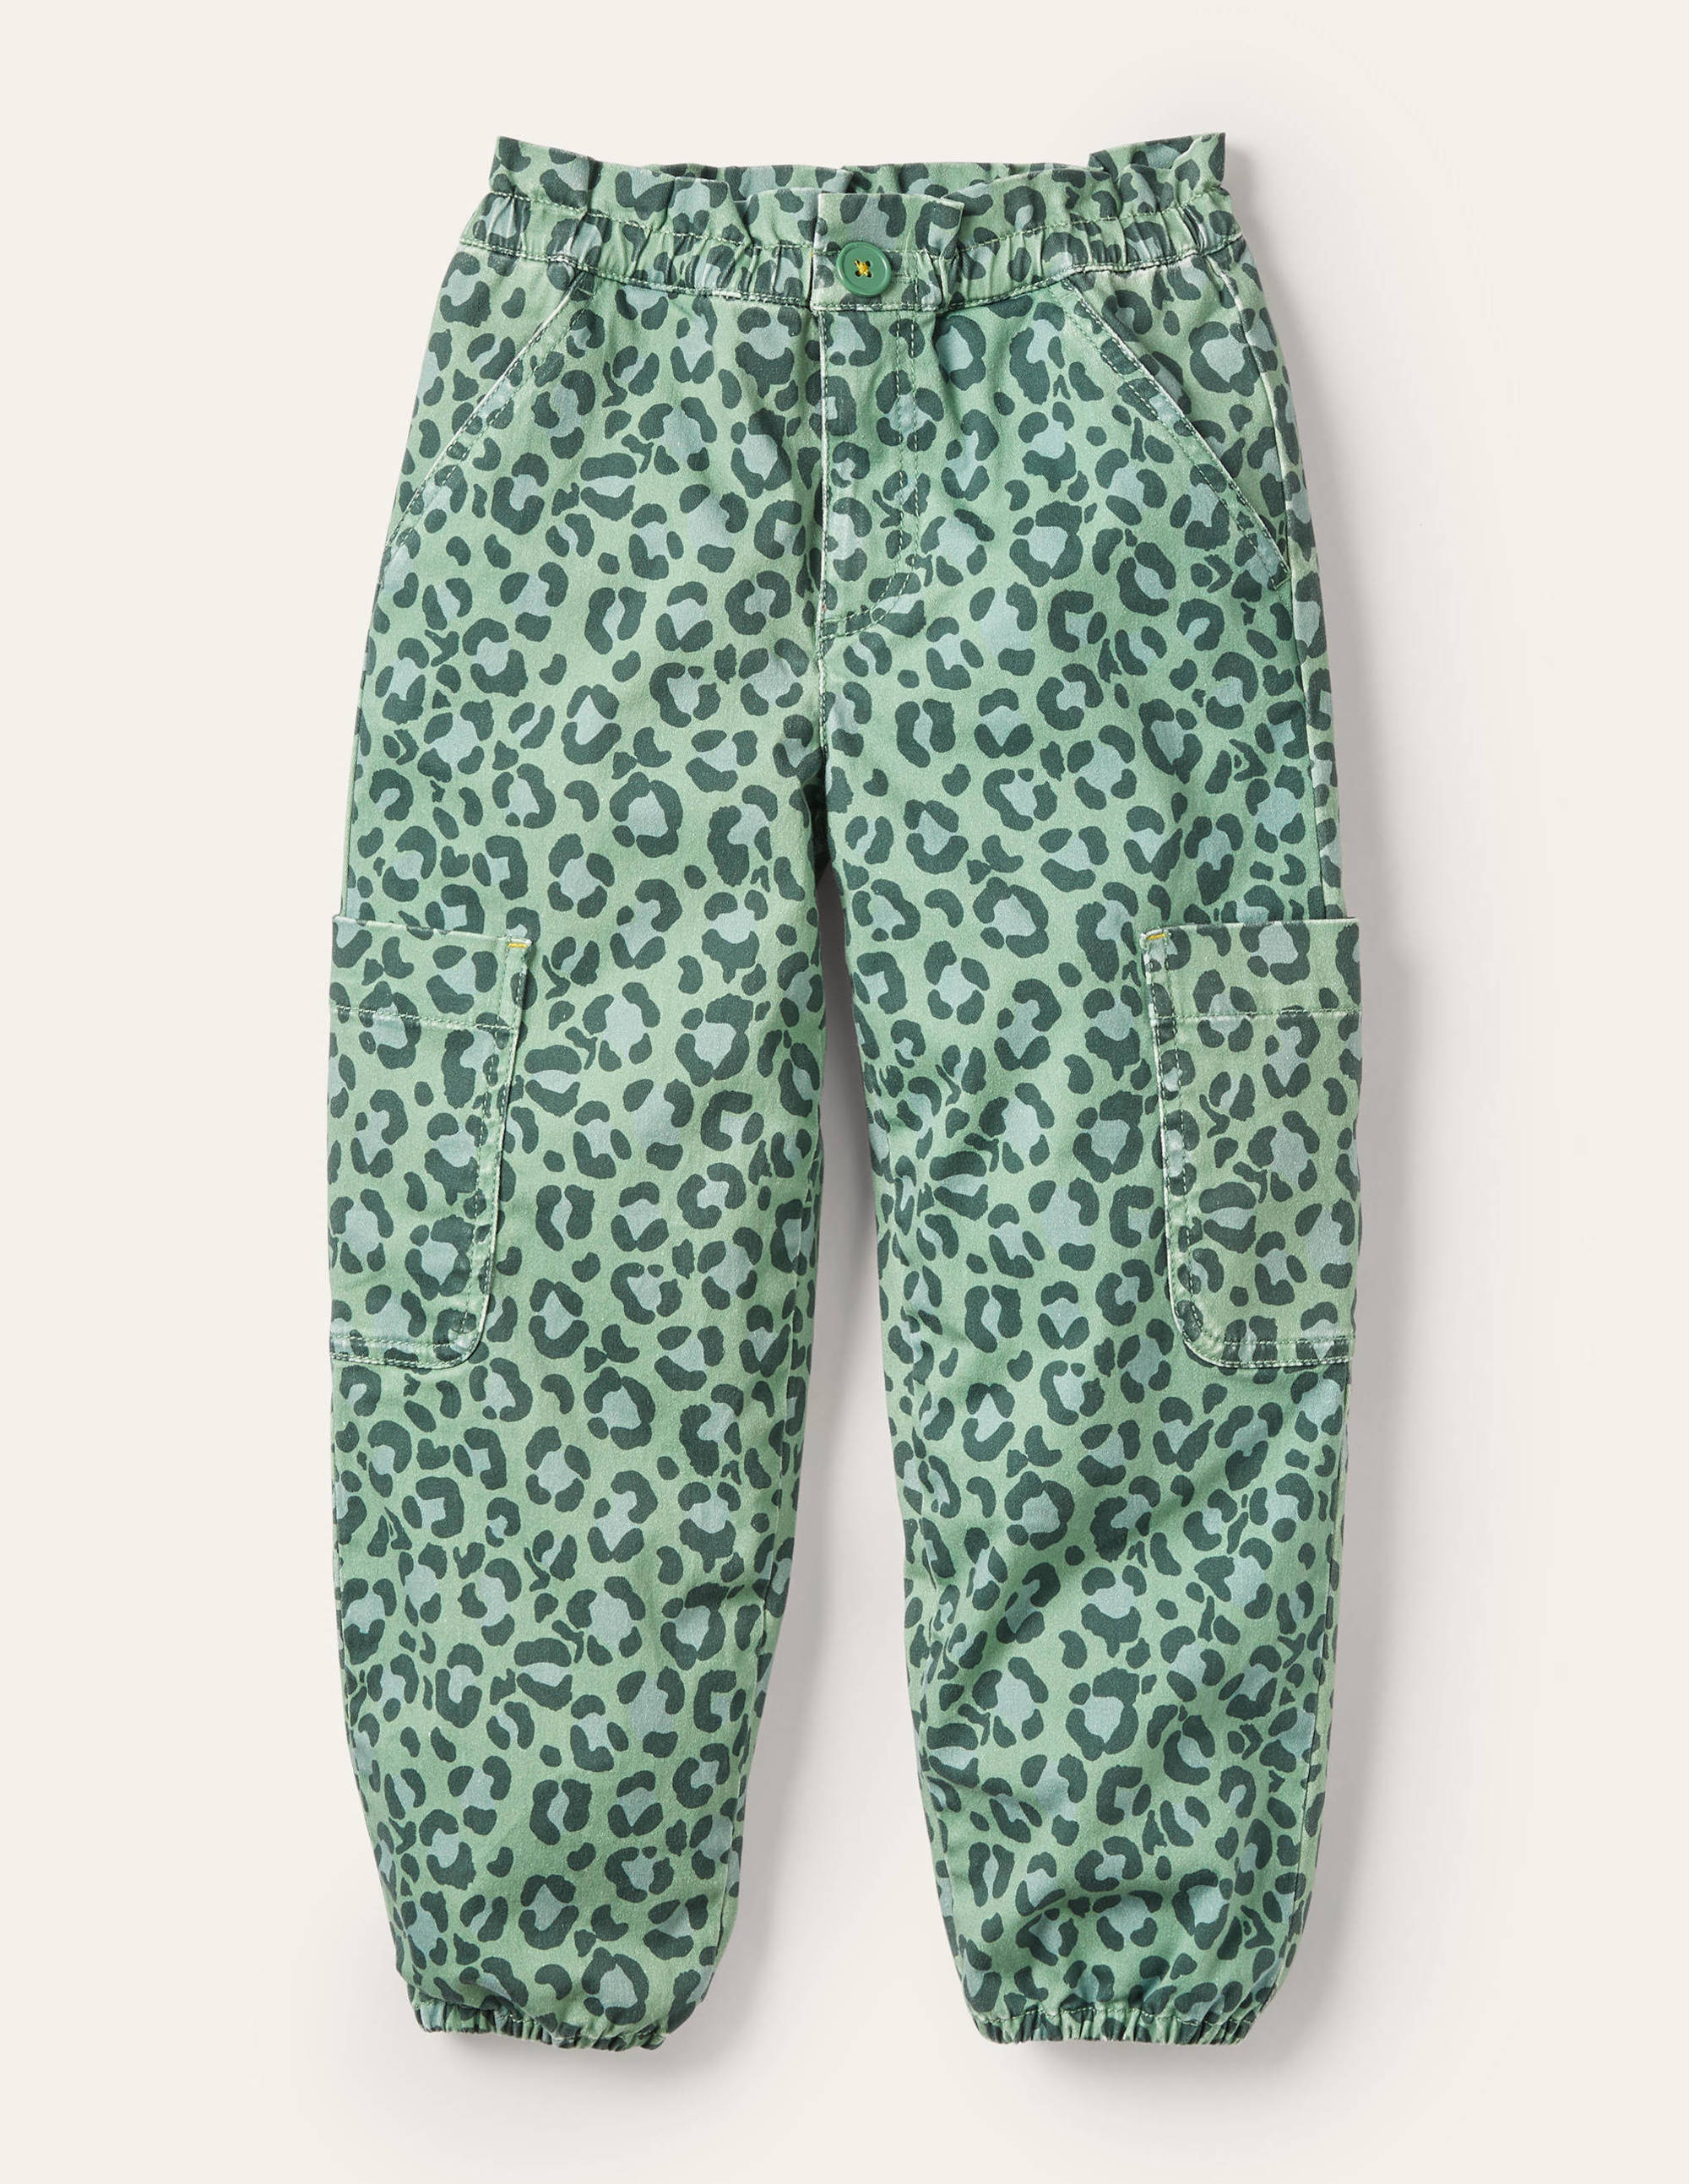 Boden Utility Pull On Pants - Rosemary Green Leopard